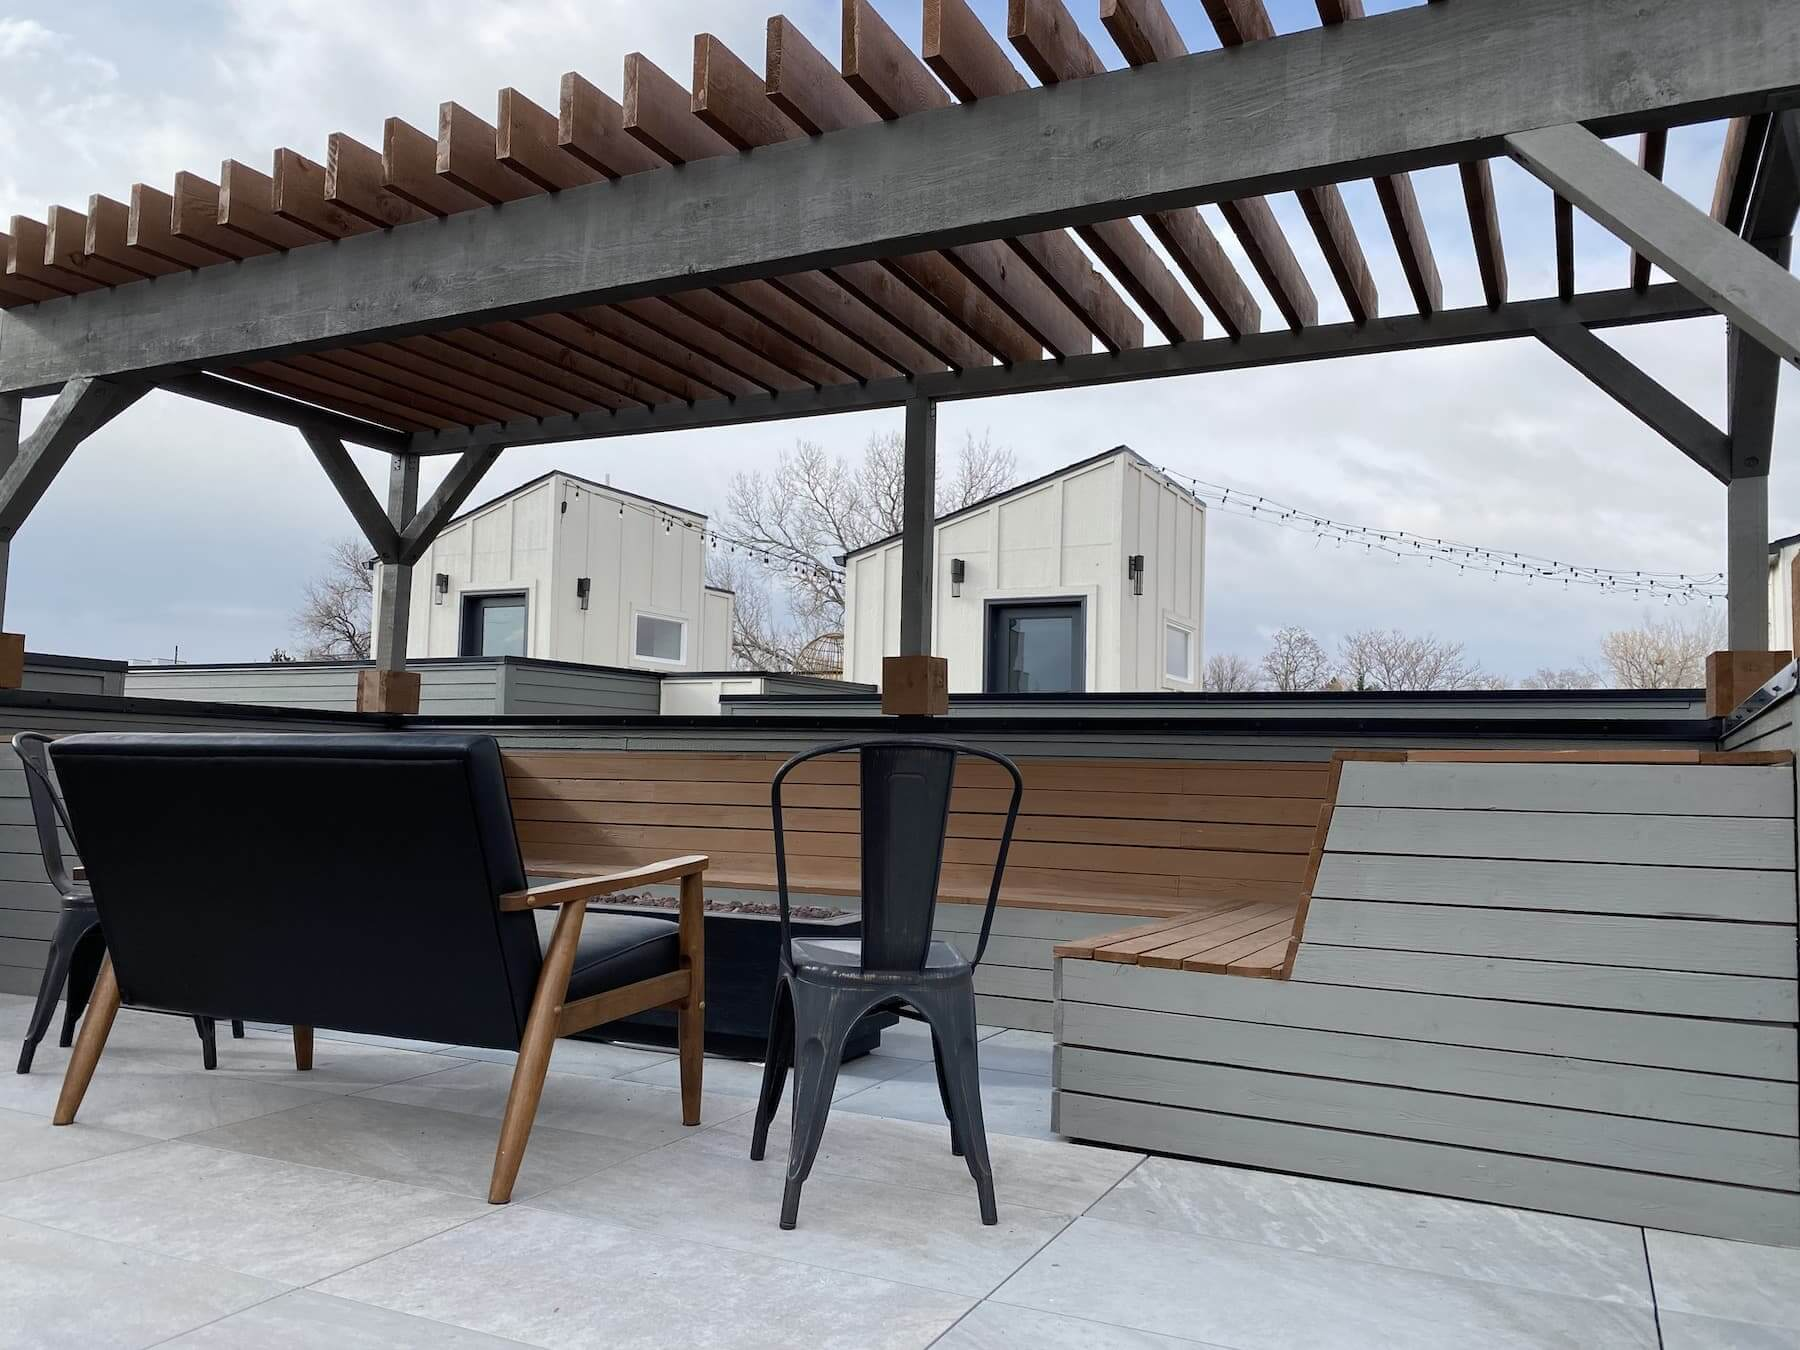 Wooden Pergola Custom Furniture Sloan's Lake Denver